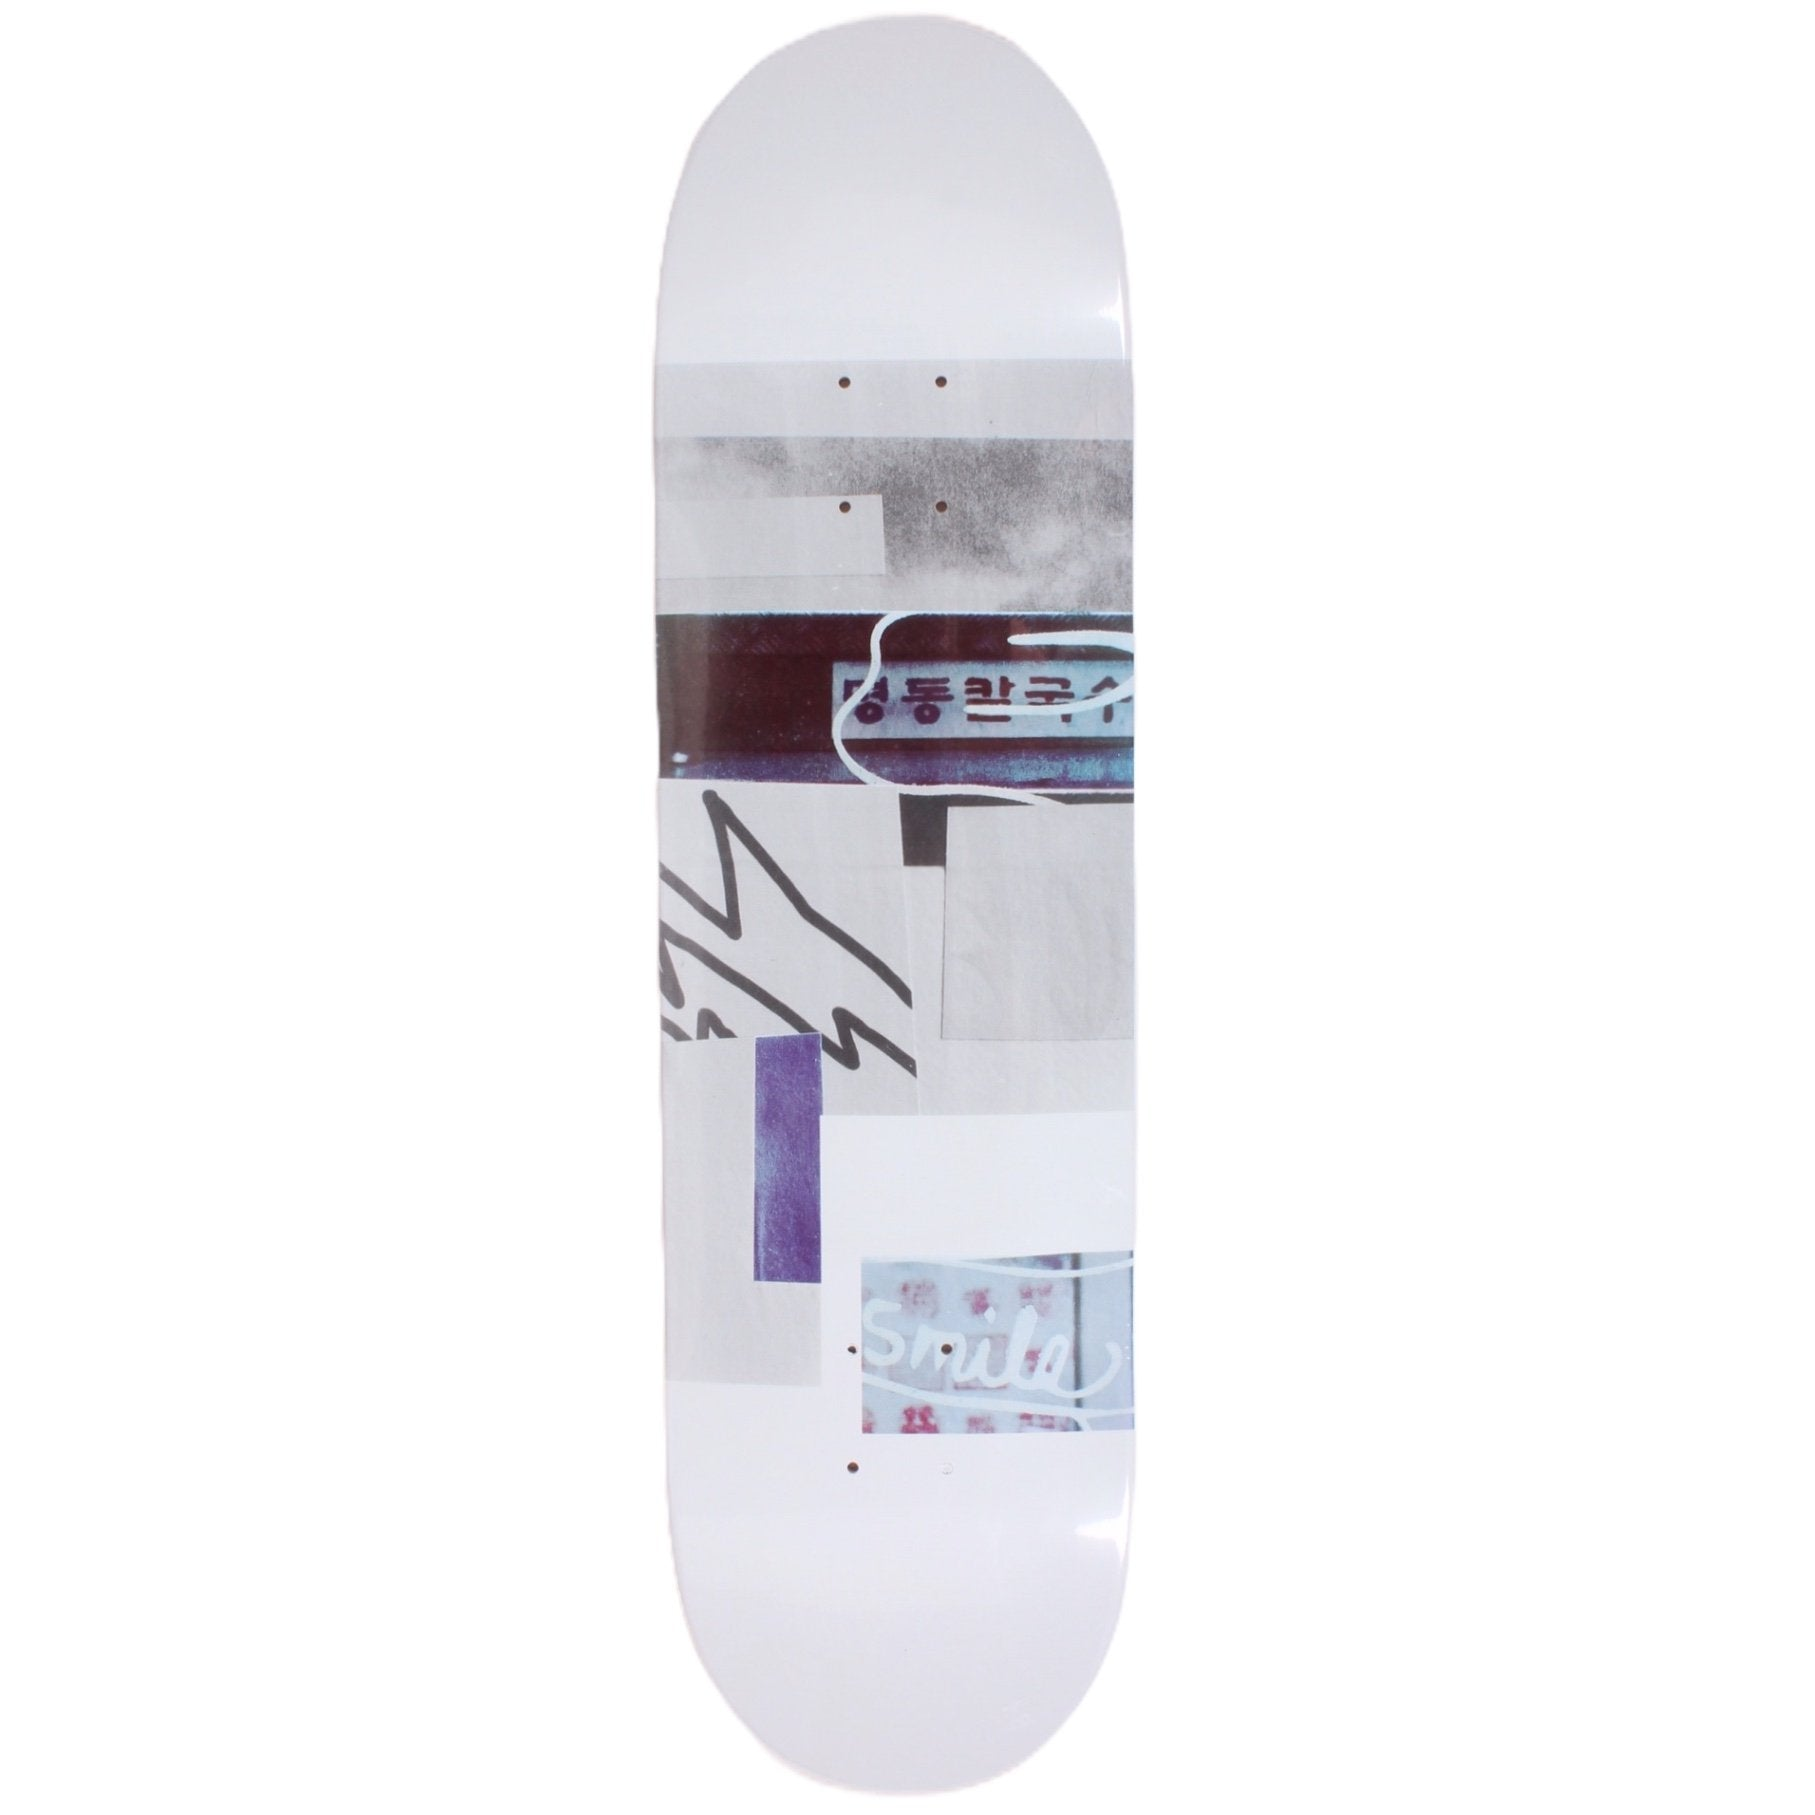 Oyster Smile Deck 8.125""